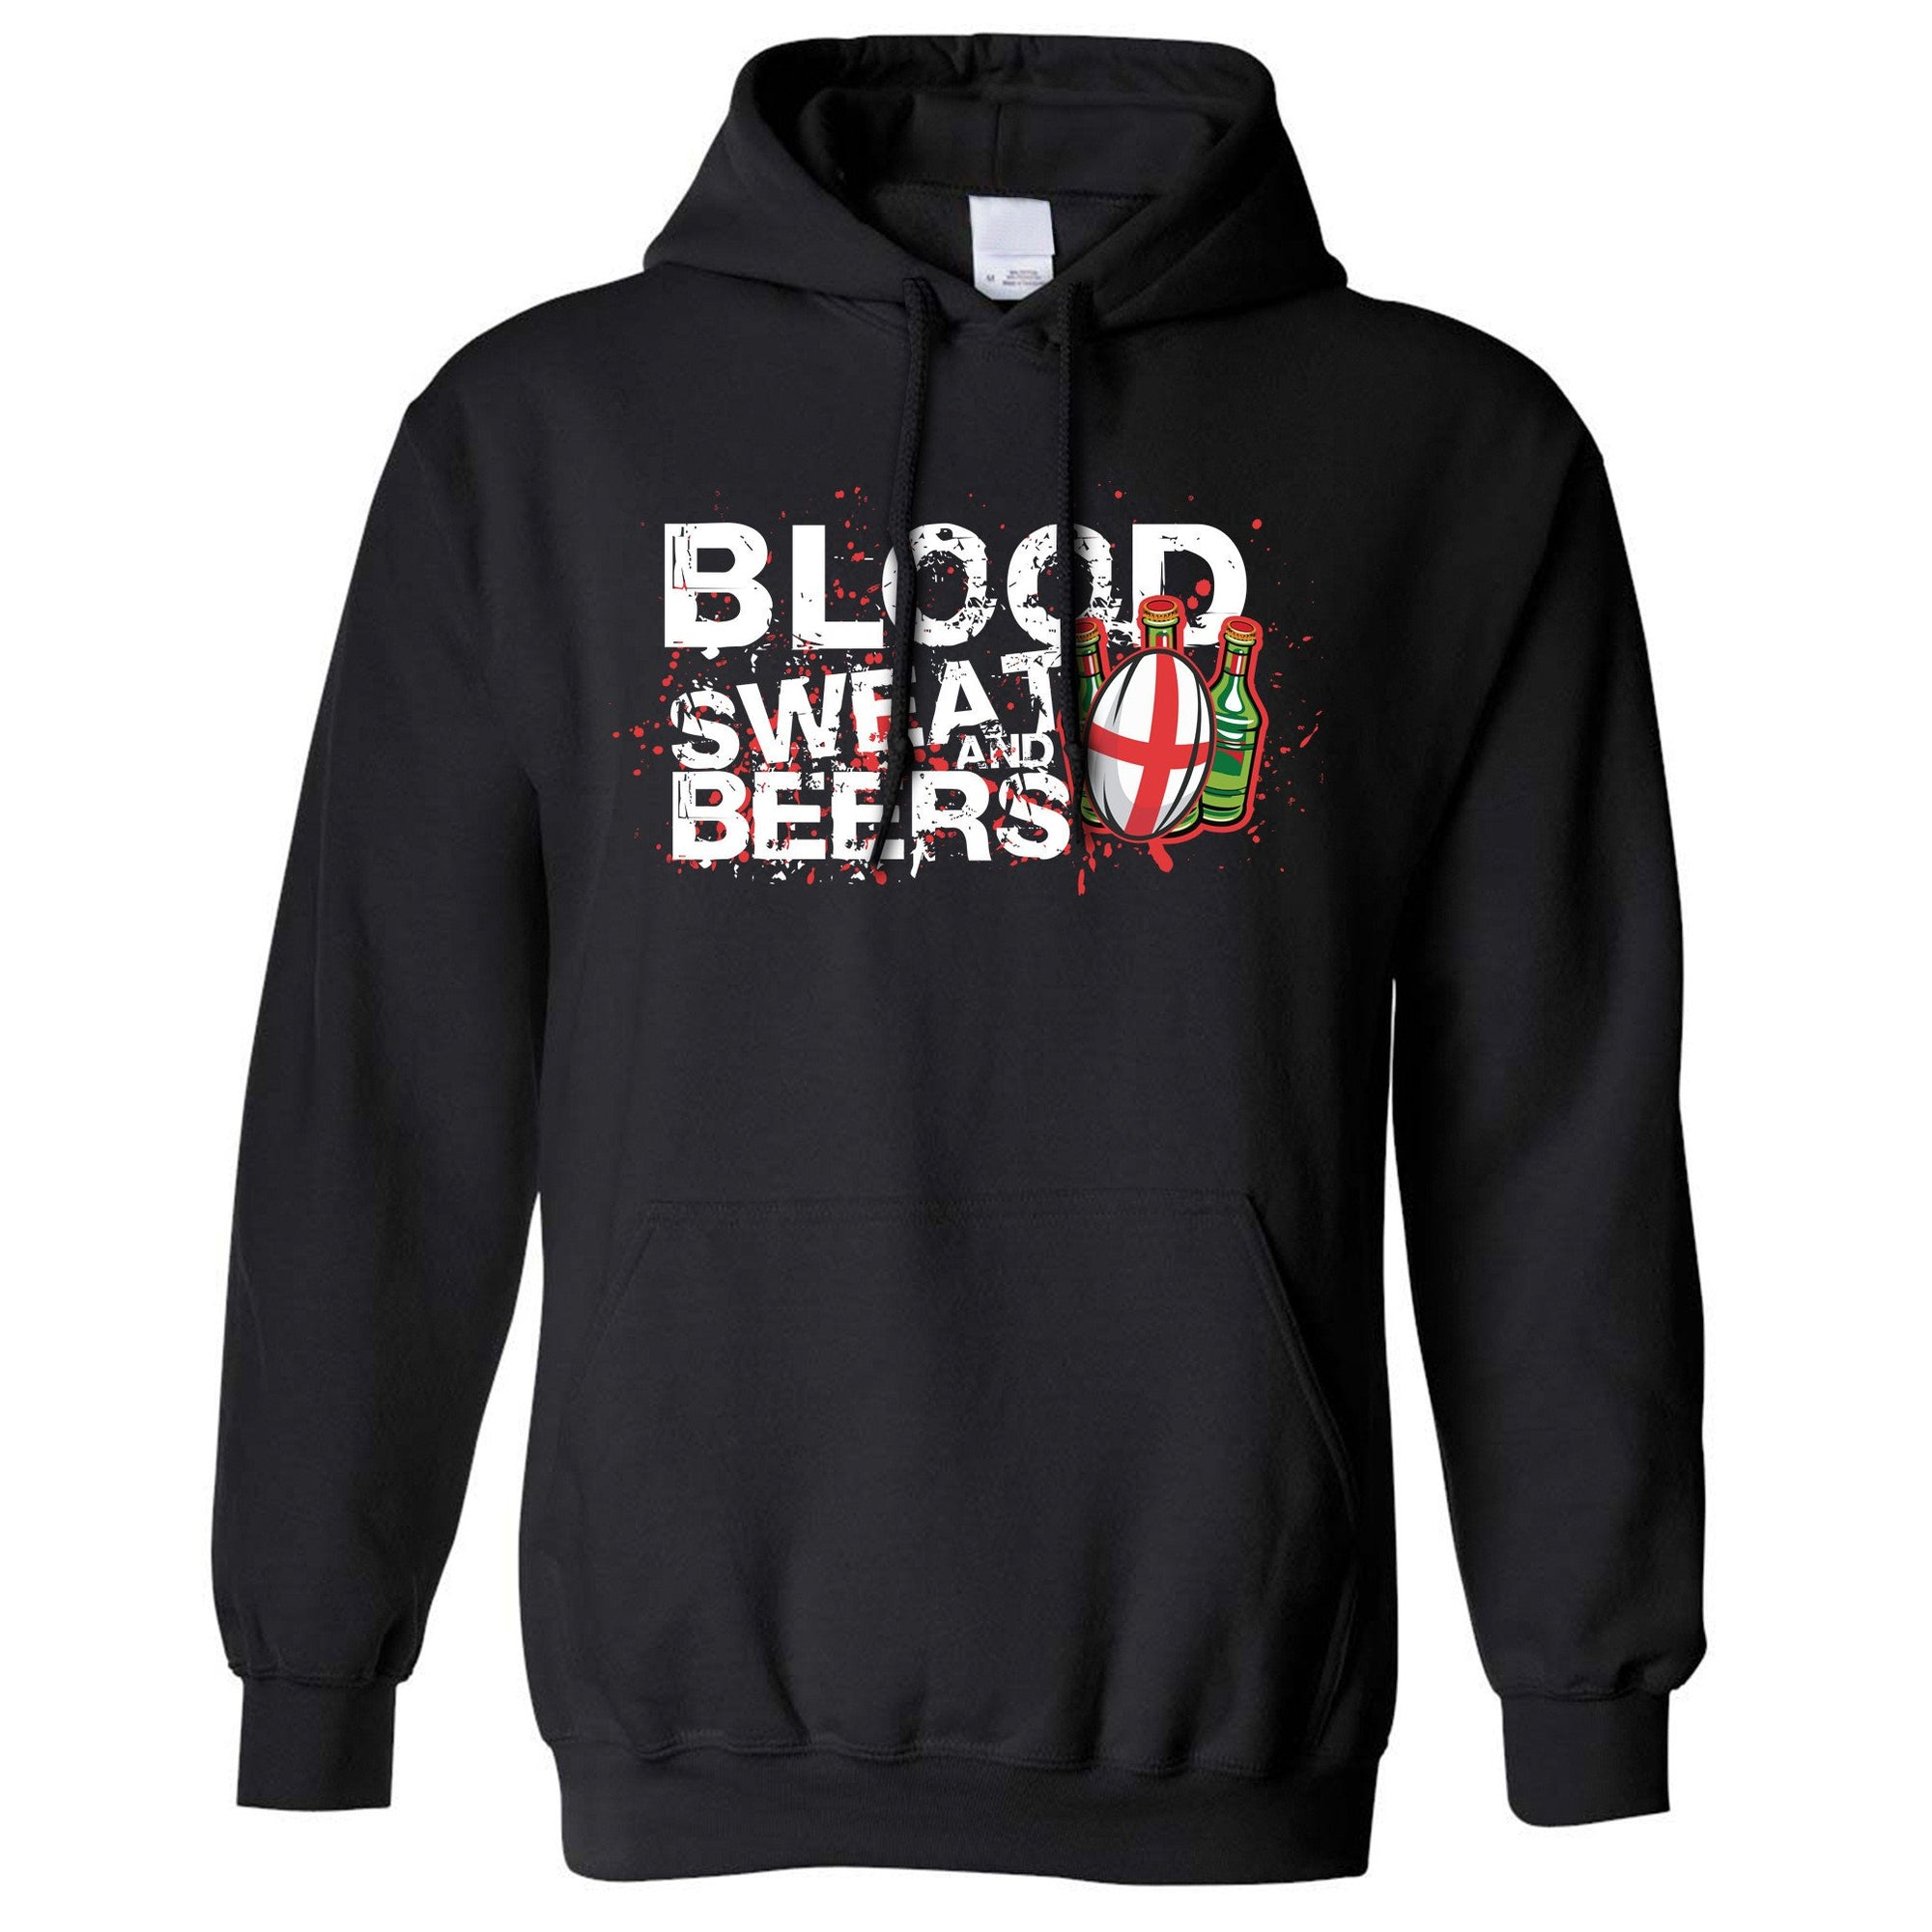 England Rugby Supporter Hoodie Blood, Sweat And Beers Hooded Jumper